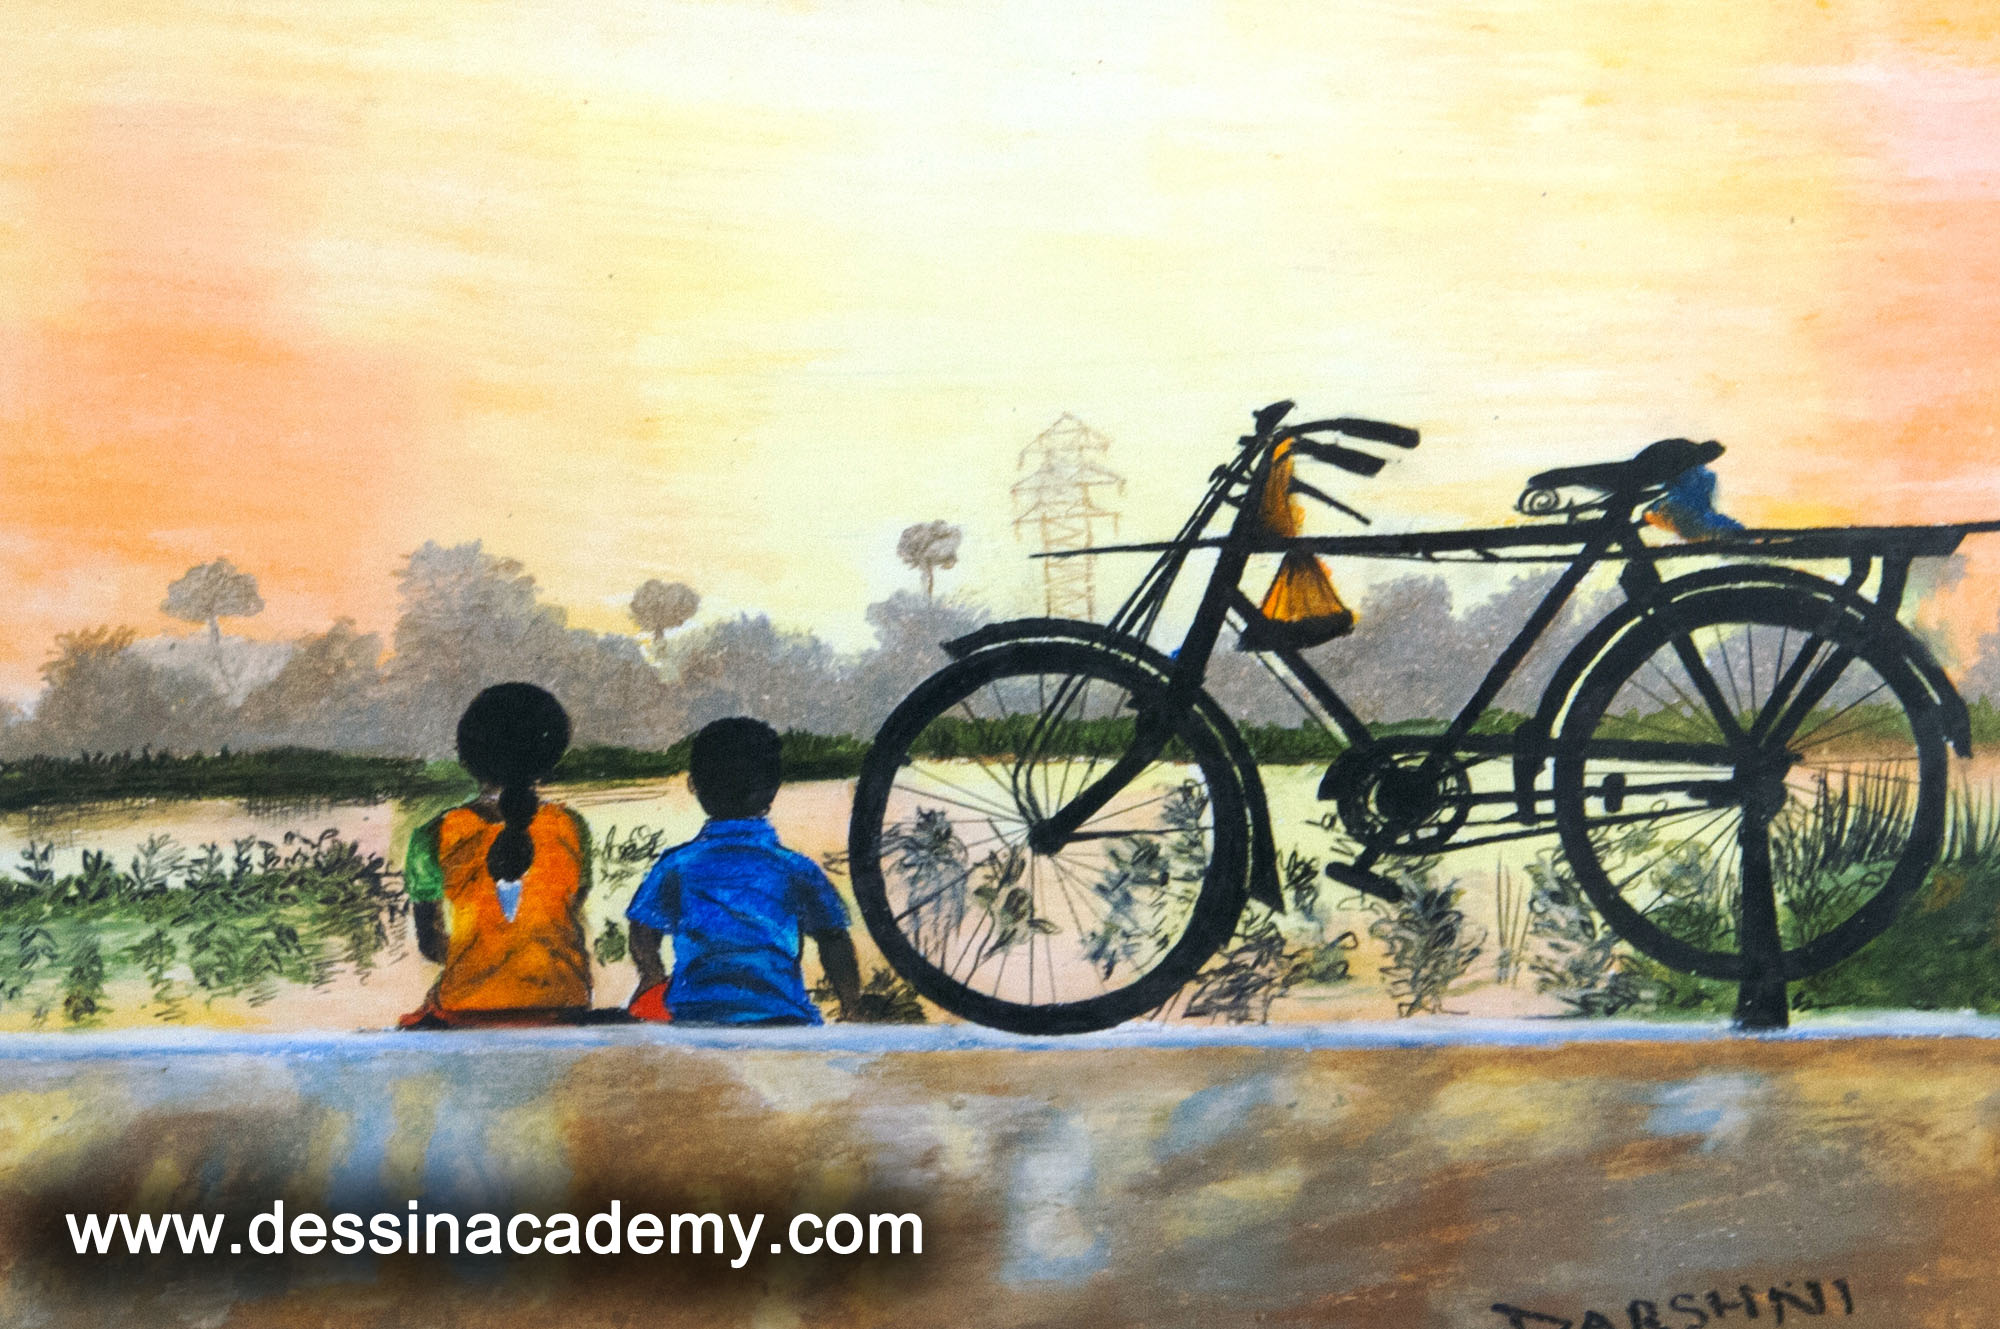 Dessin School of Arts Students Painting, Dessin School of Arts, Pencil Drawing Coaching in Anna Nagar East L Block